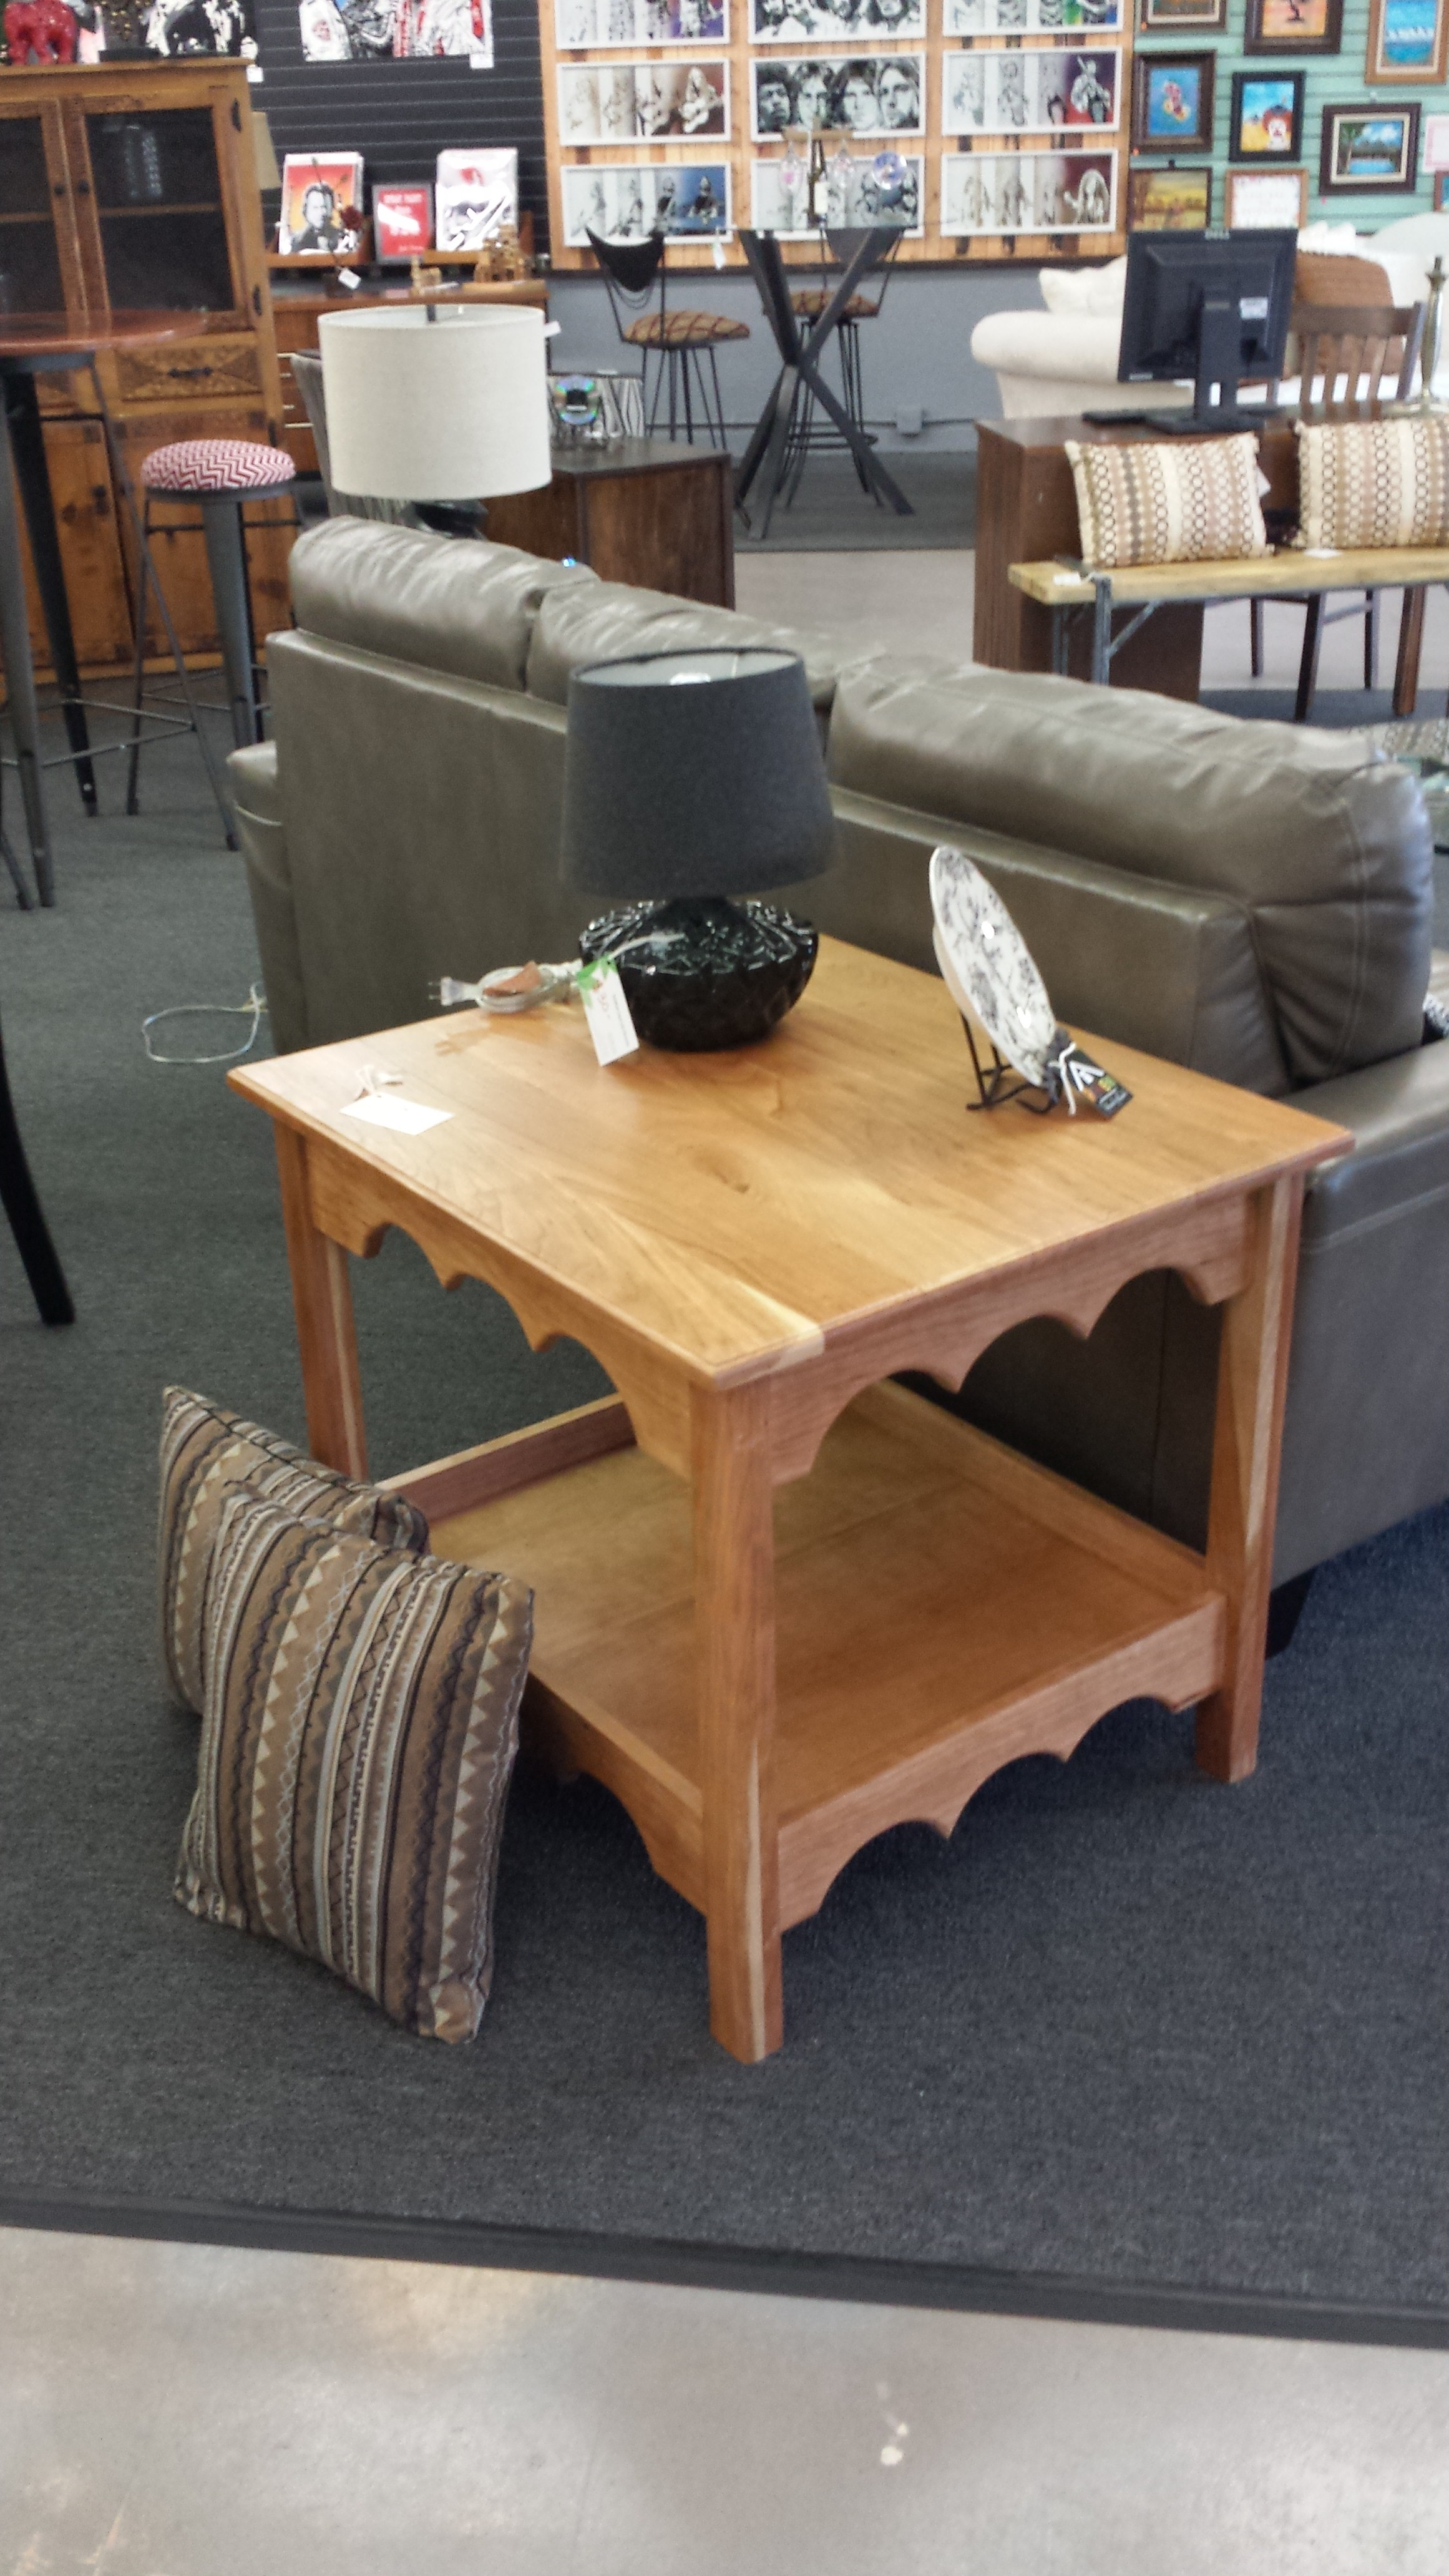 Customizing furniture is one of my passions by incorporating different woods. I visualize unfinished wood and place my signature on it. The construction is made to last by using processes like joinery.The picture above is a side table made from cherry wood (currently being displayed at Blue Chair located on Broadway in Denver.) The black shelf below is made from pine and stained with Jacobean stain is also on display in my own retail space with other masterpieces.